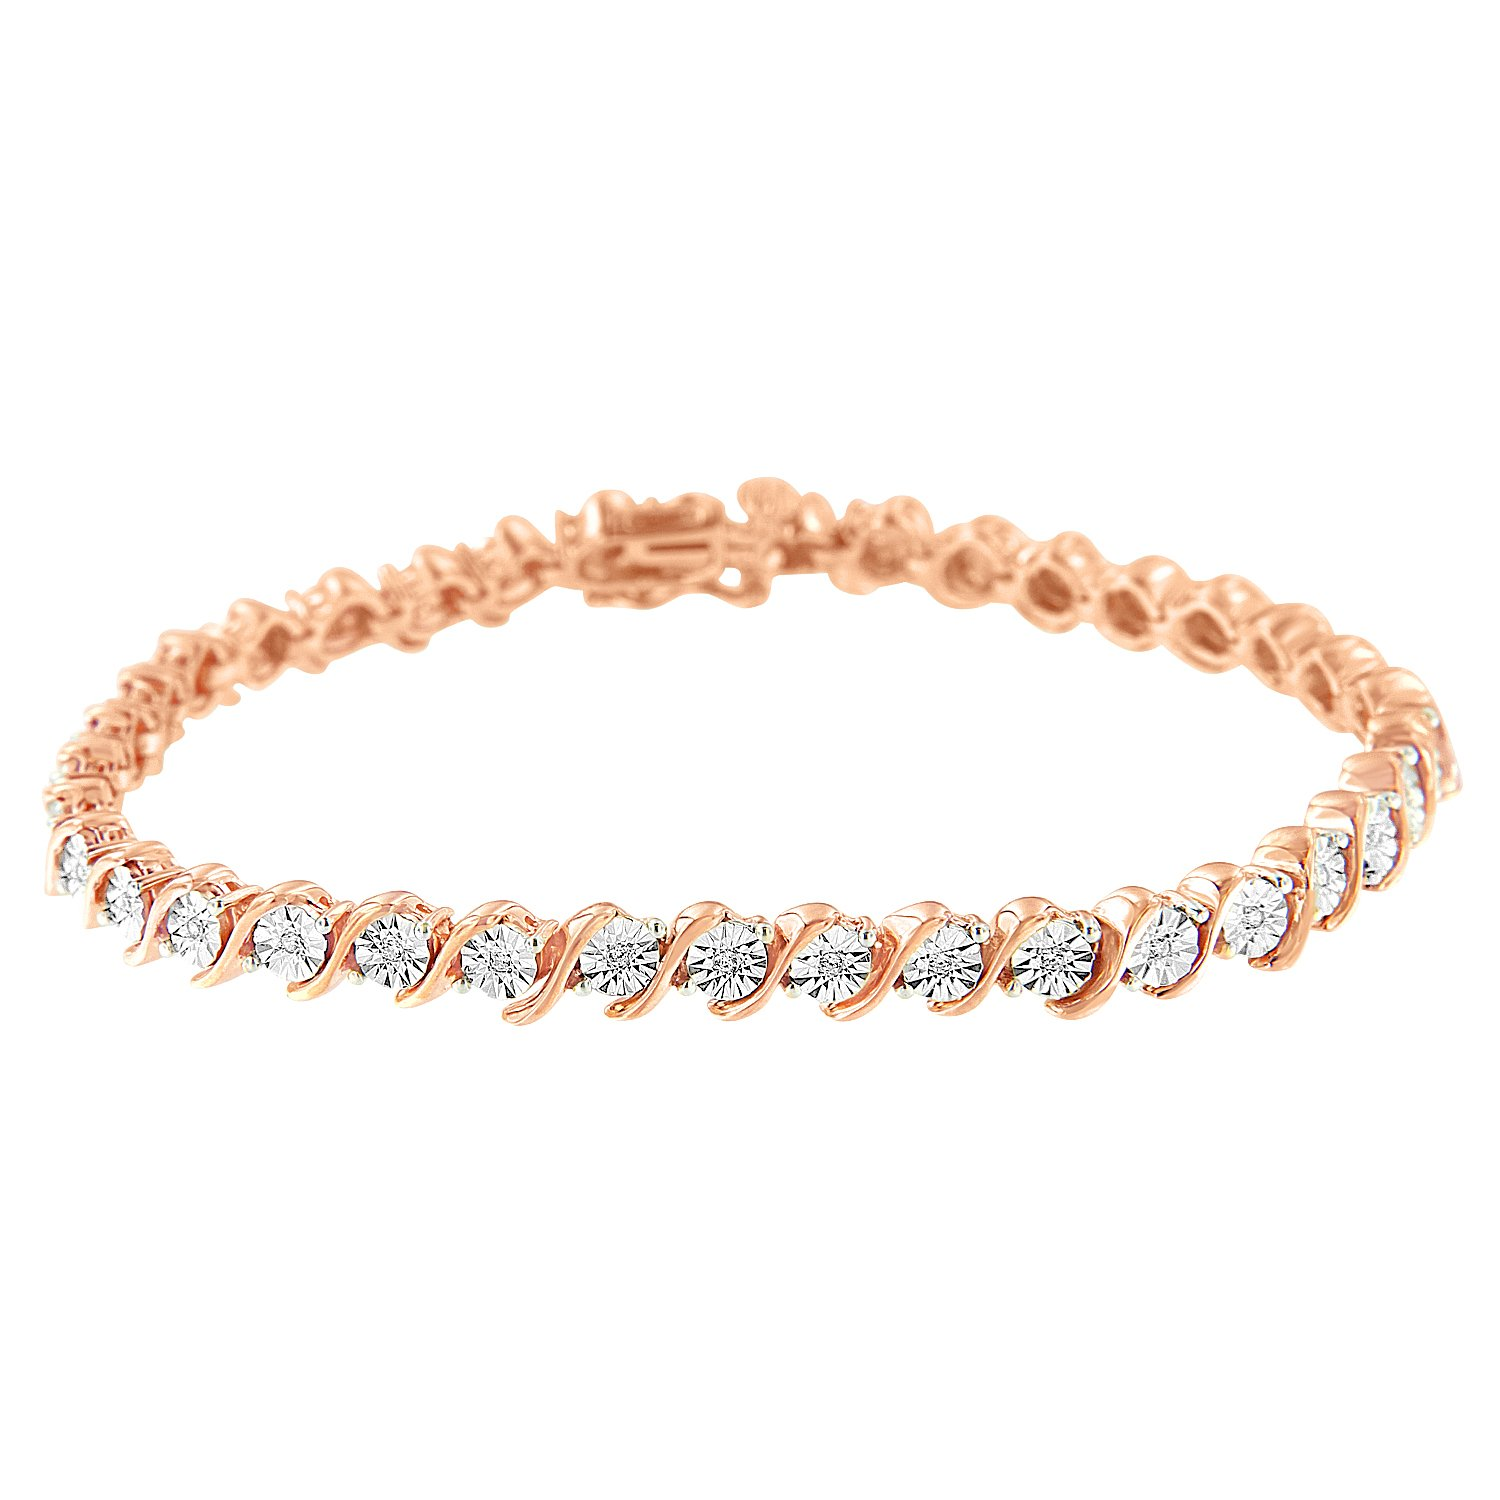 2 Micron 14k Rose Plated Sterling Silver Diamond Tennis Bracelet (0.25 cttw, H-I Color, I2-I3 Clarity) by Original Classics